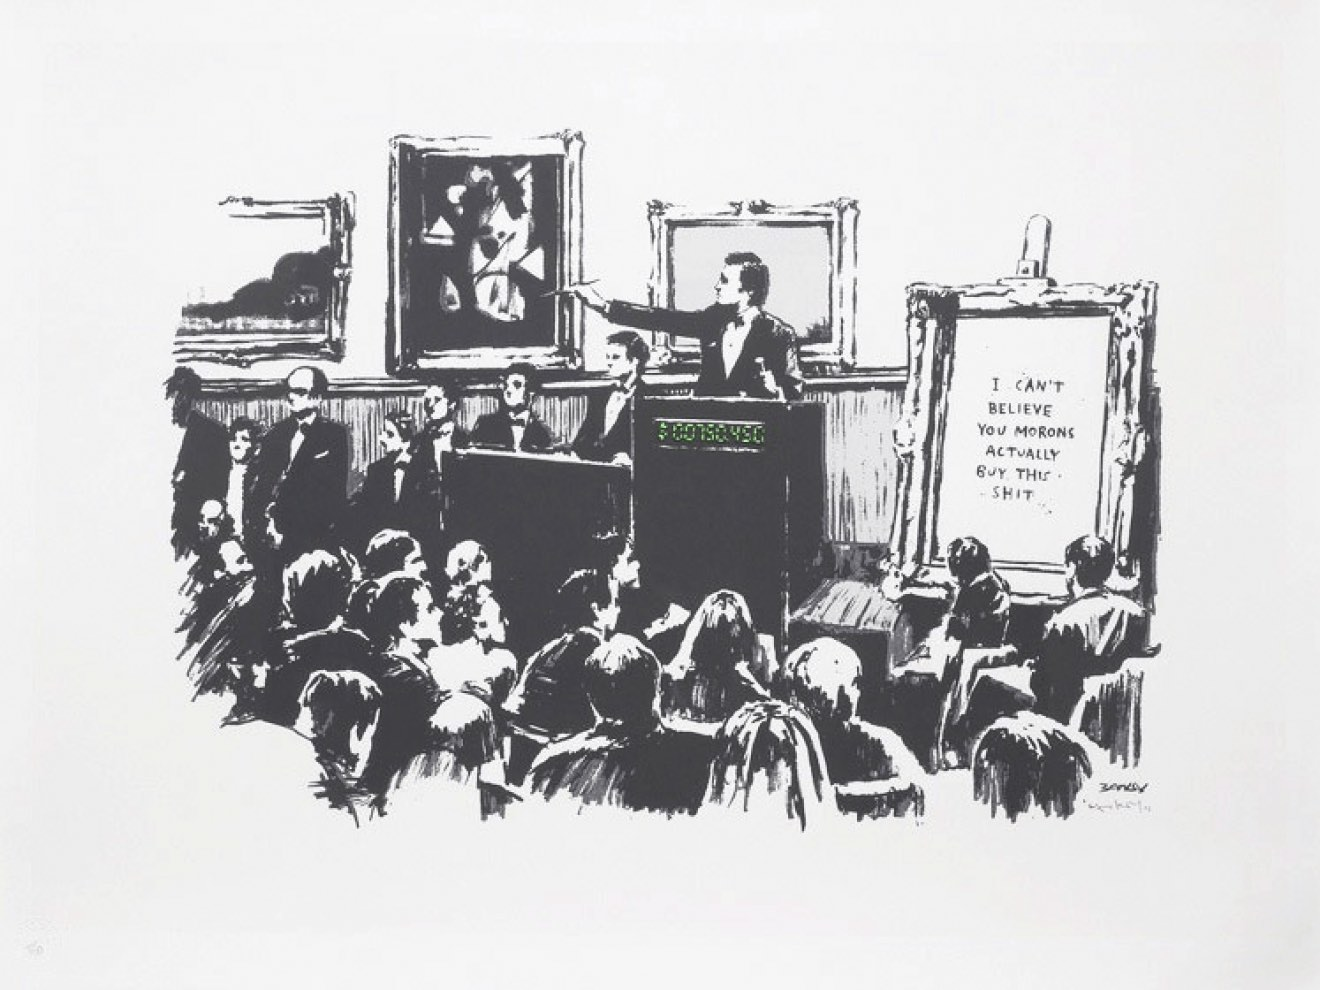 Banksy Morons White Unsigned 2006 at zebra one gallery